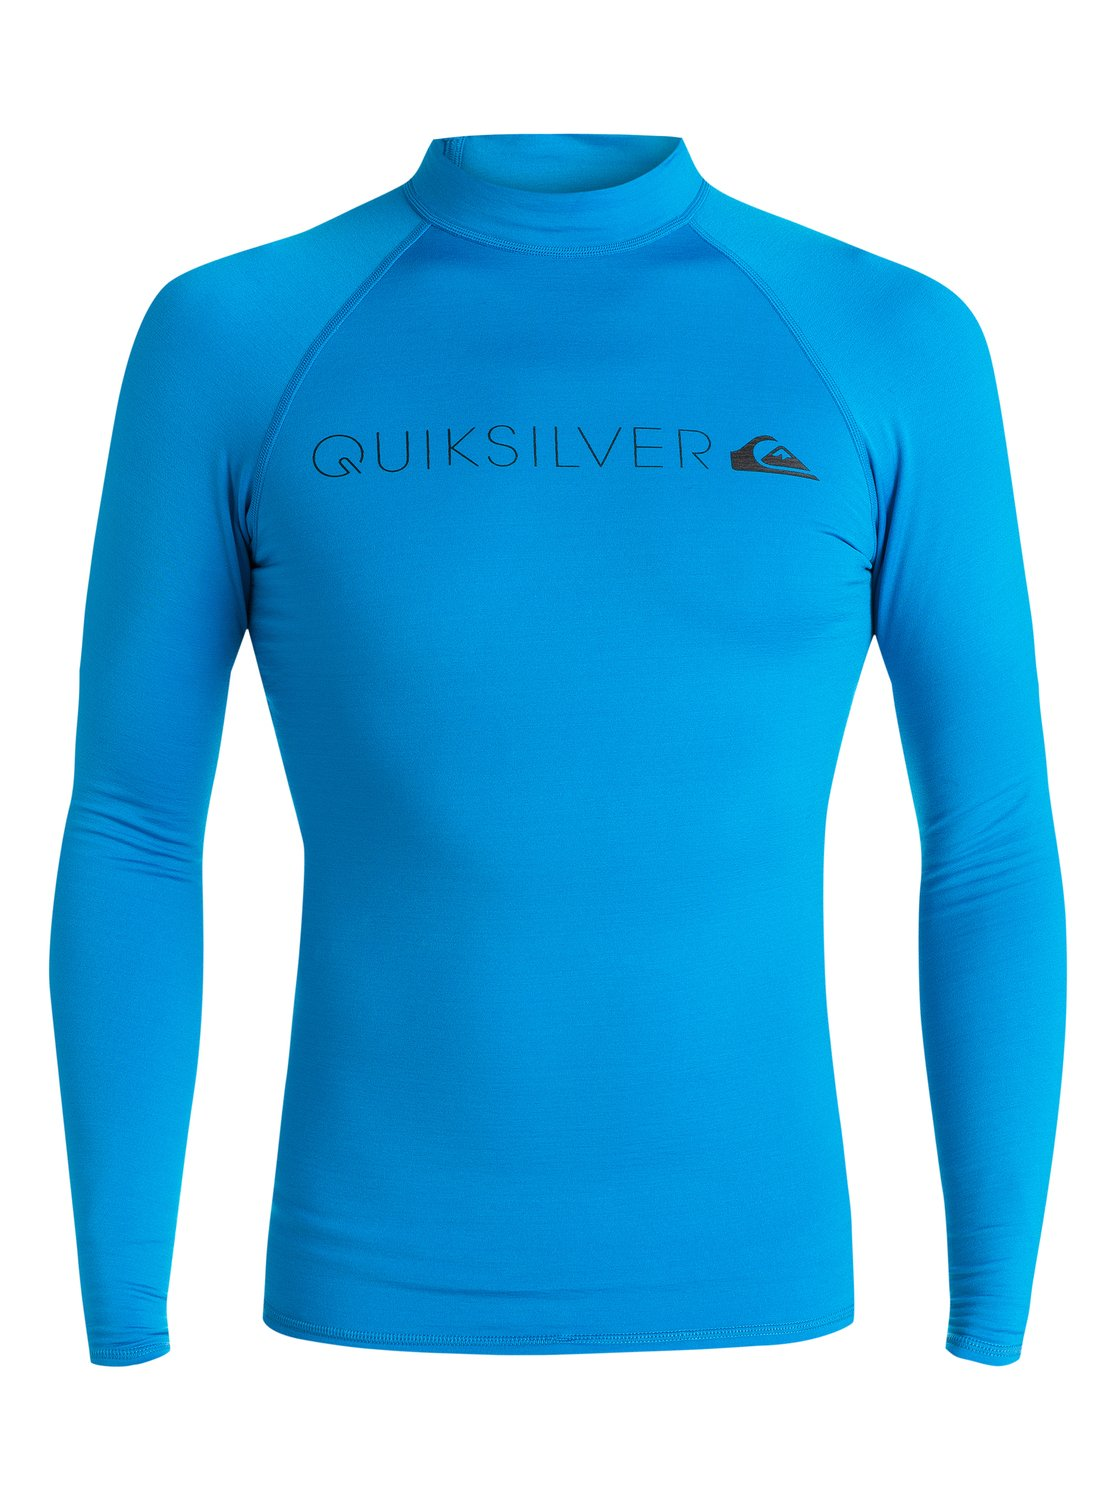 Quiksilver-Heater-Surf-tee-pour-homme-EQYWR03031